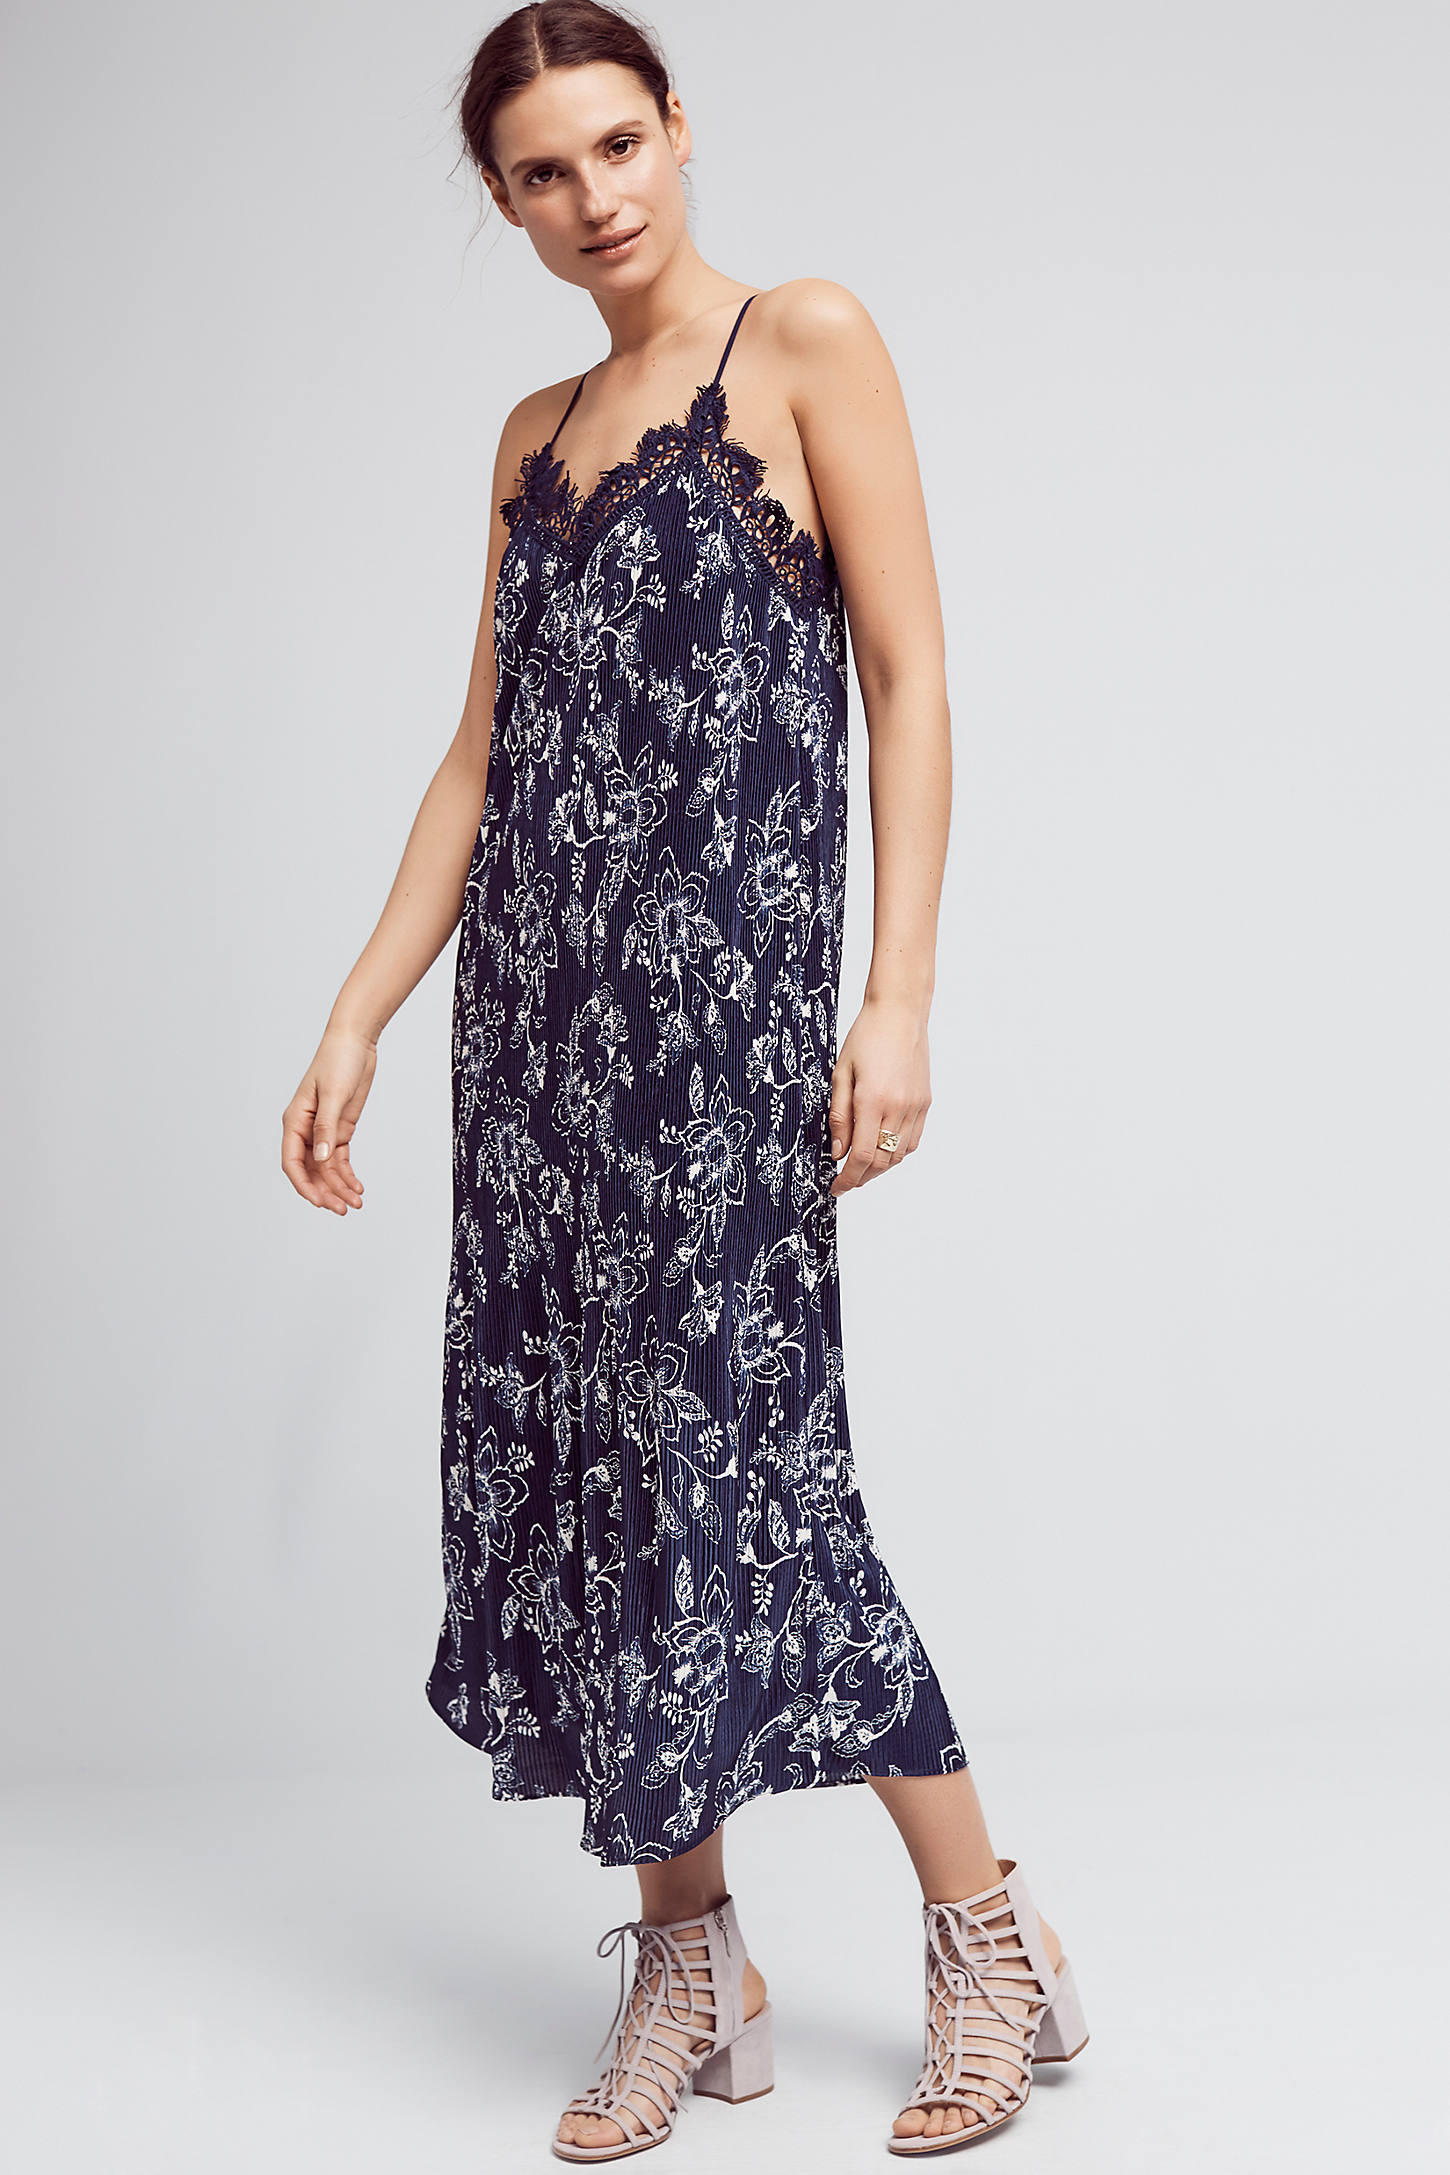 Marsilea Slip Dress